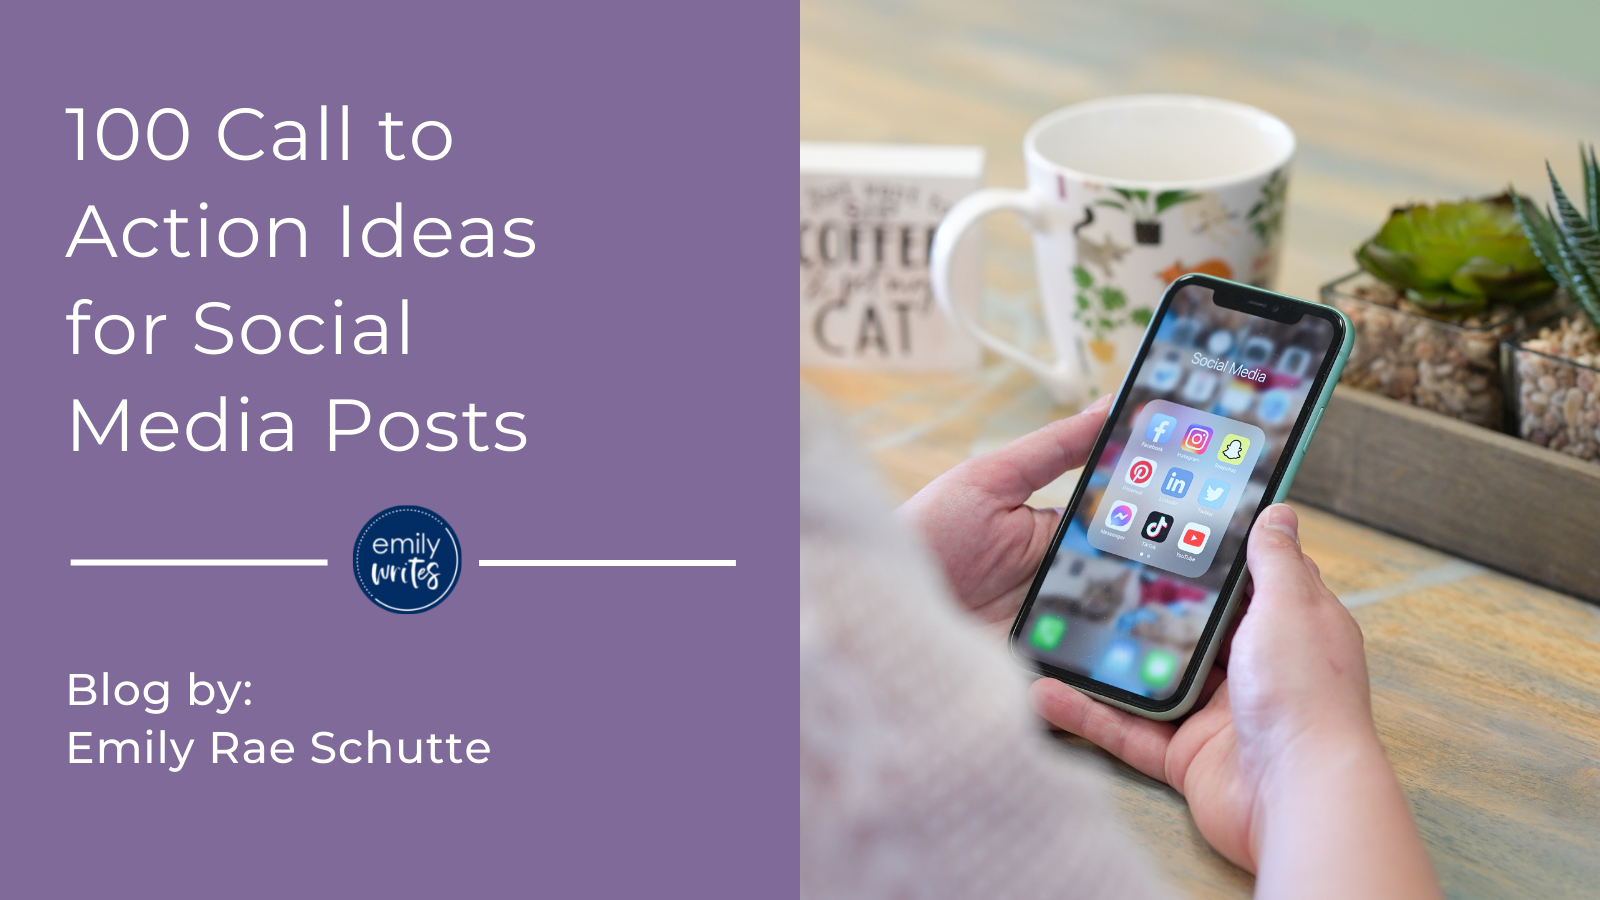 100 calls to action for social media posts